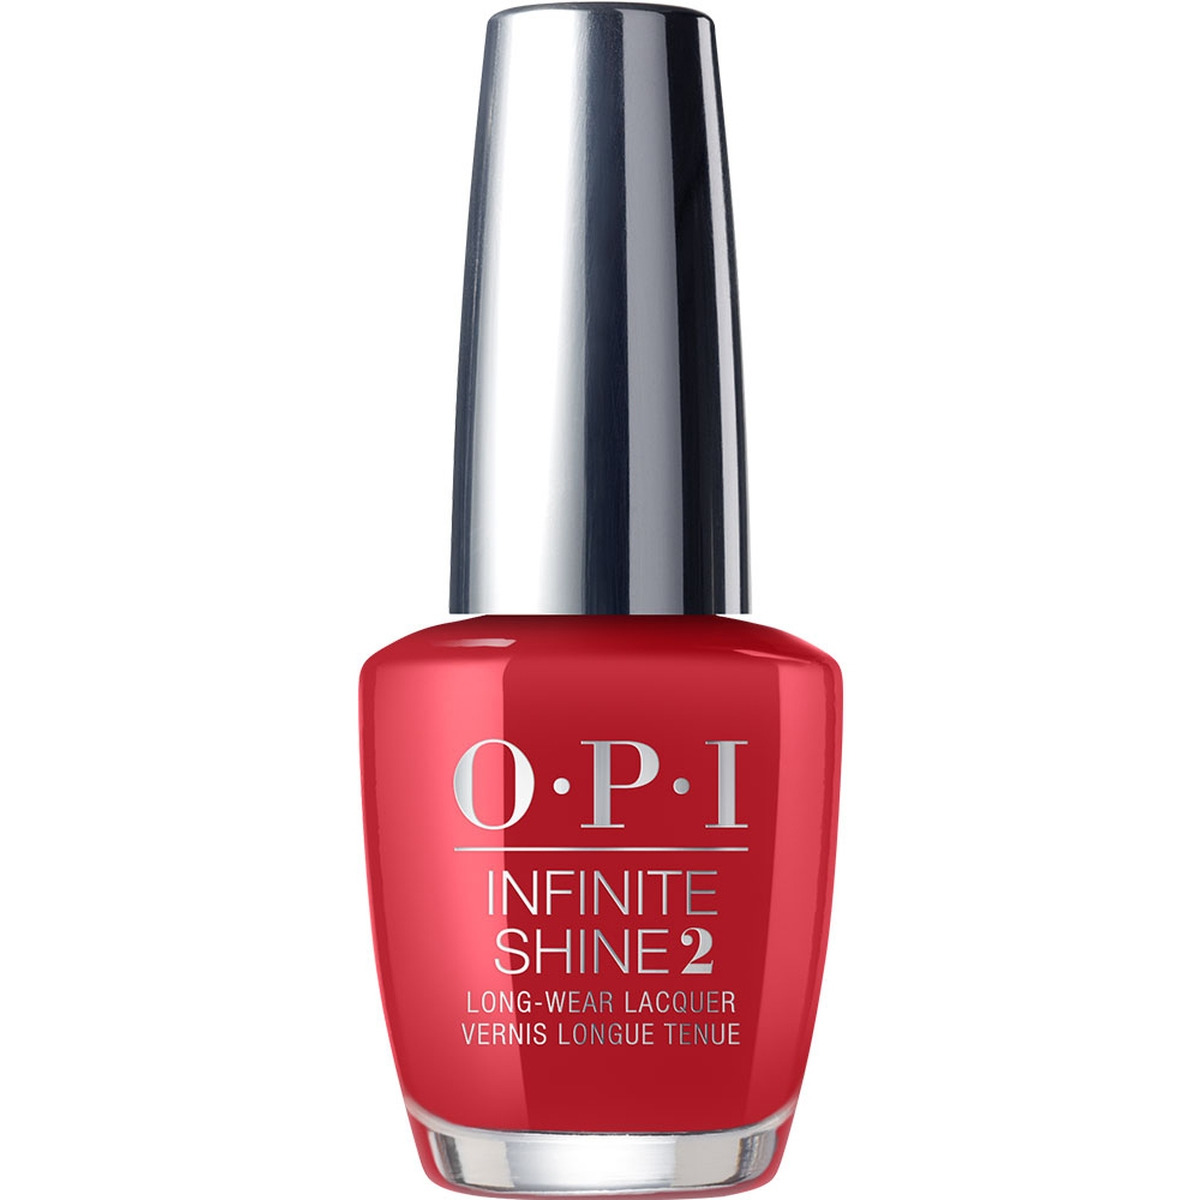 OPI Infinite Shine Лак для ногтей Tell Me About It Stud, 15 мл opi лак для ногтей iceland infinite shine 15 мл